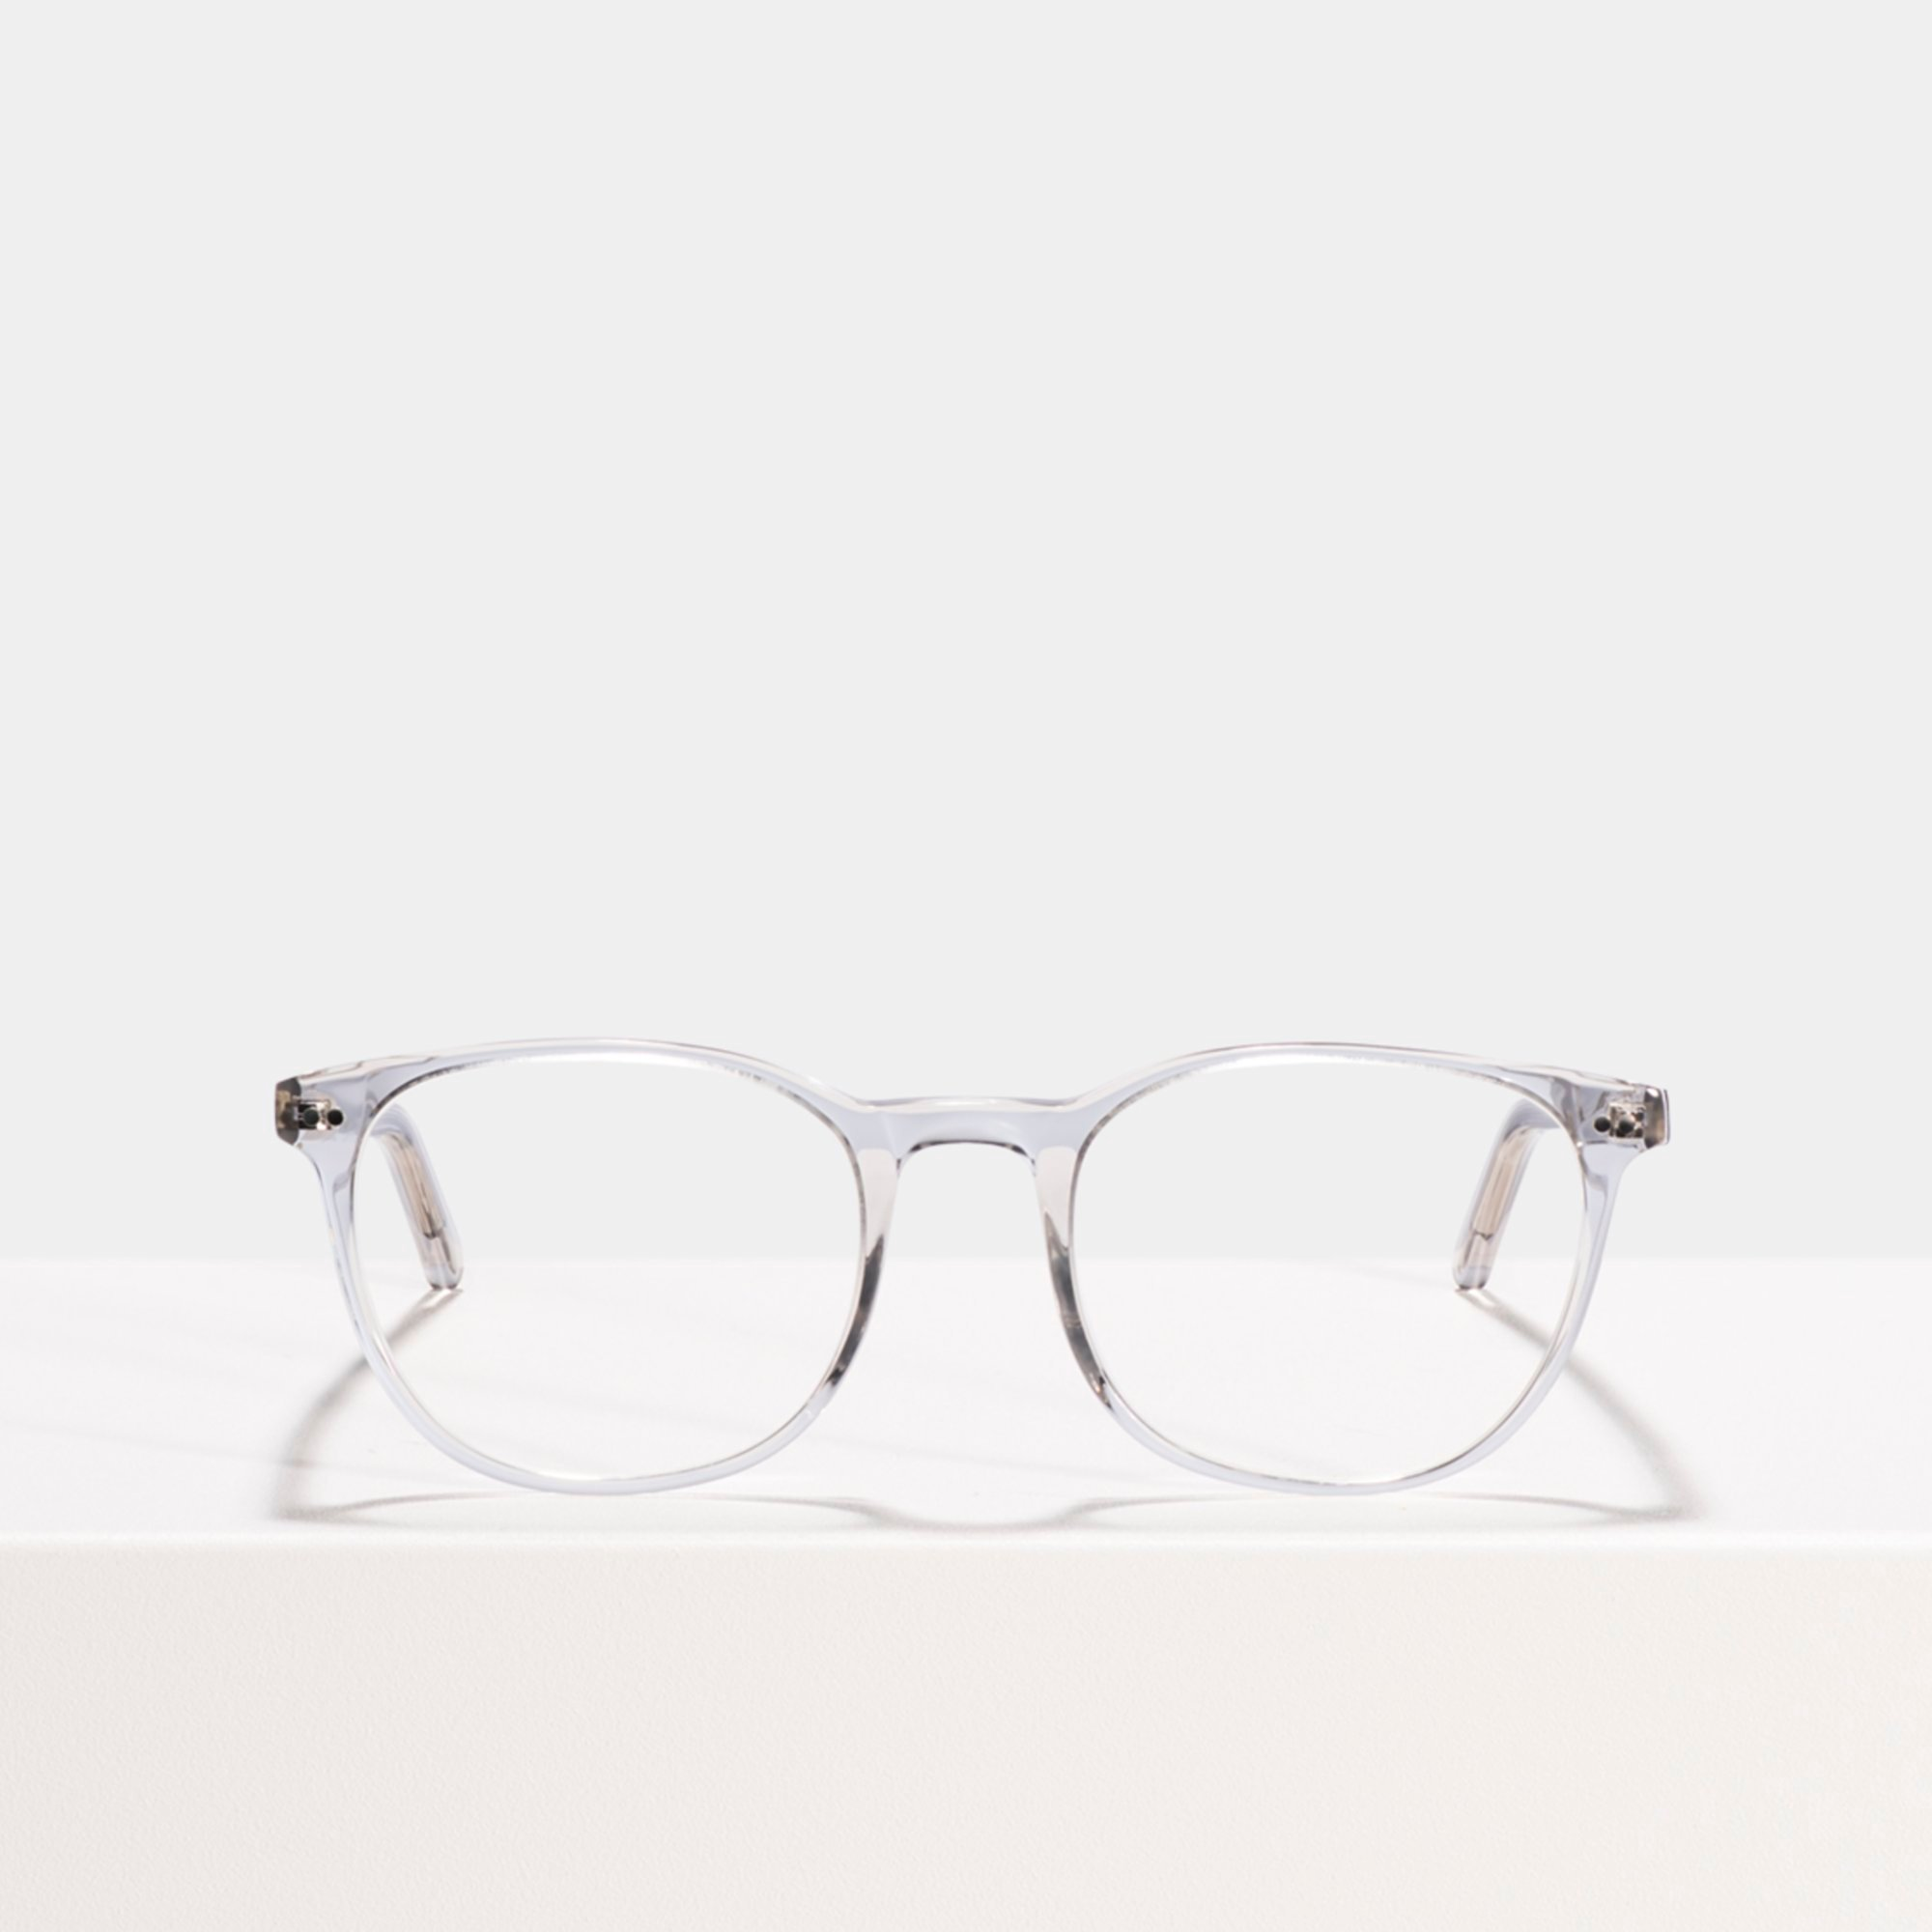 Ace & Tate Glasses | square acetate in Clear, Grey